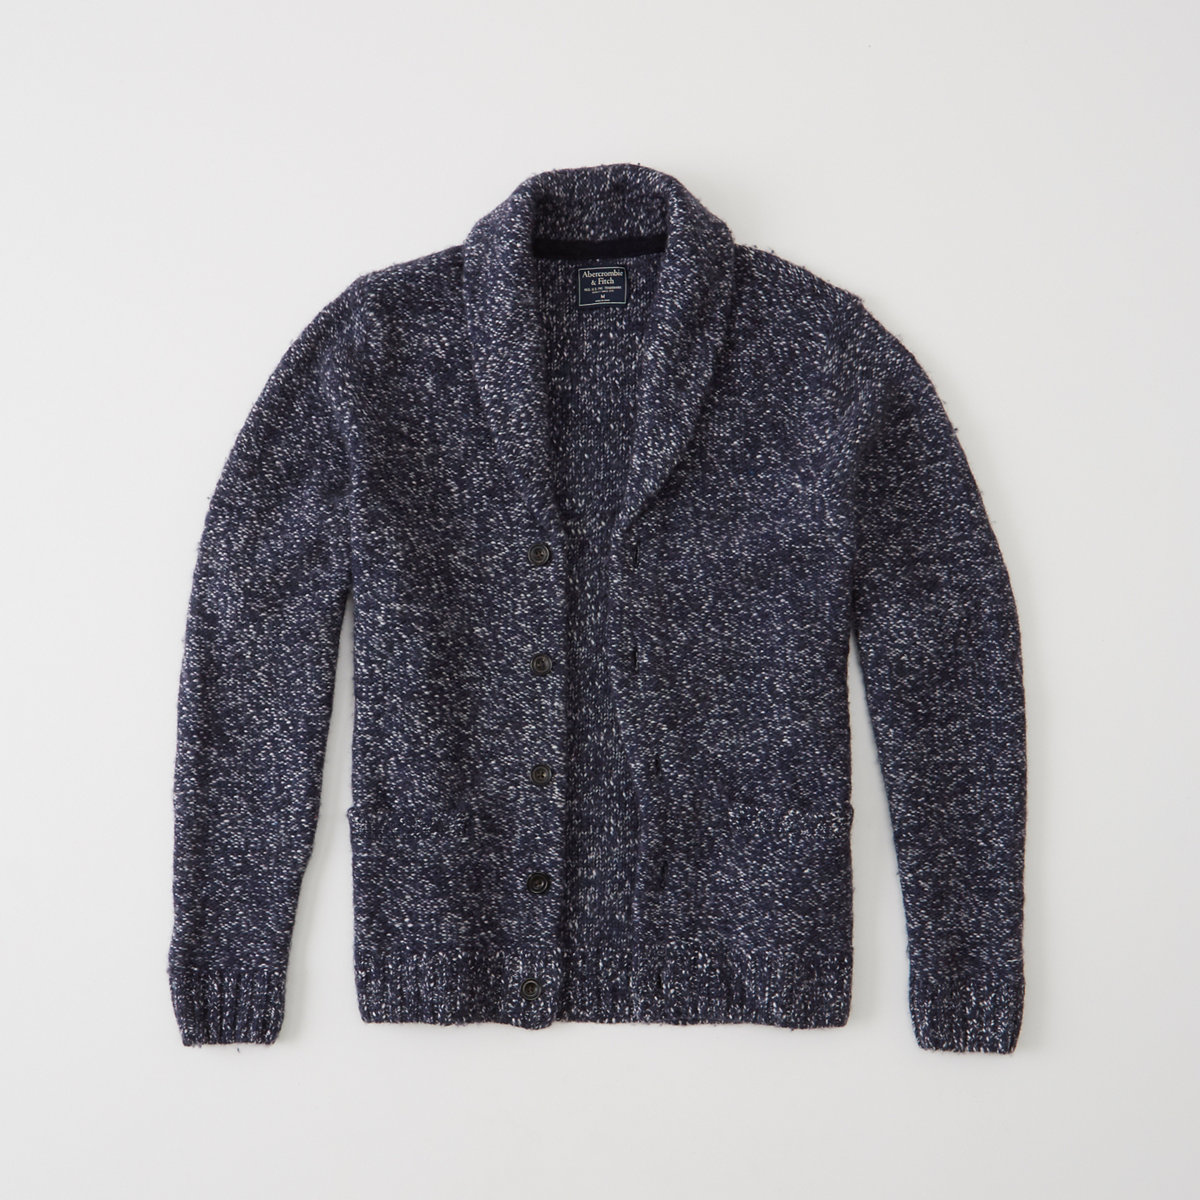 Snuggle Shawl Cardigan